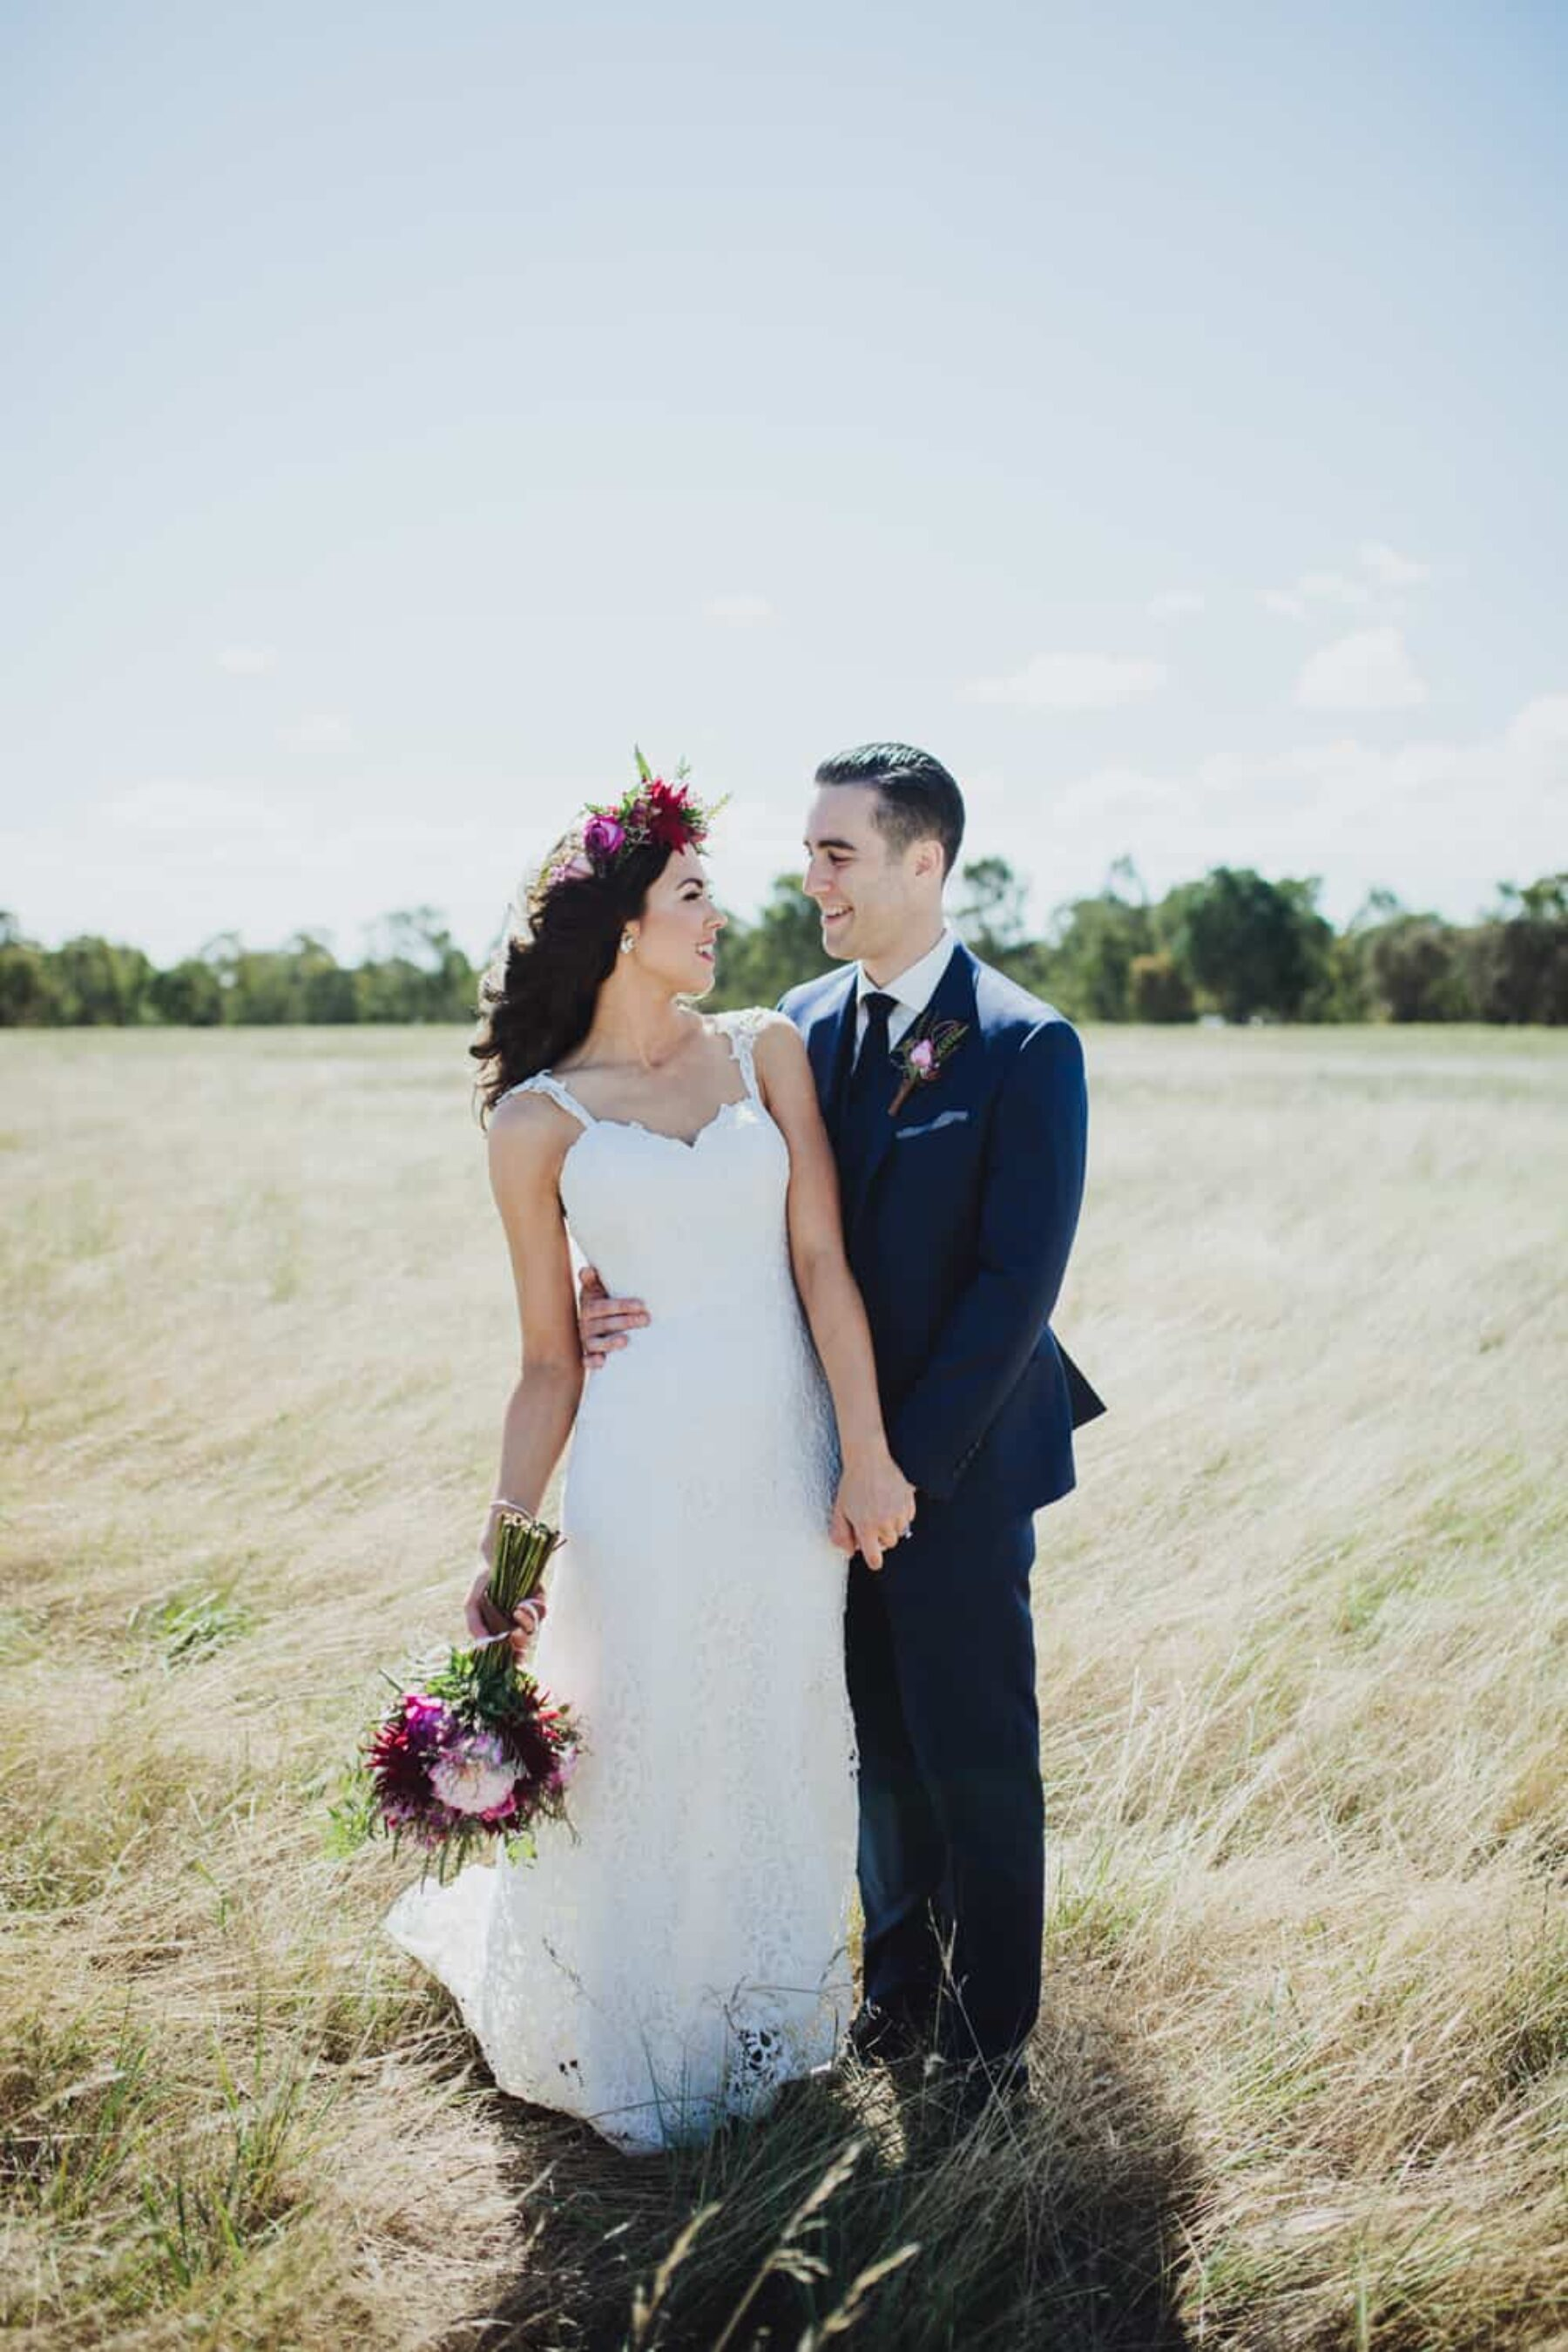 Melbourne wedding - Long Way Home Photography